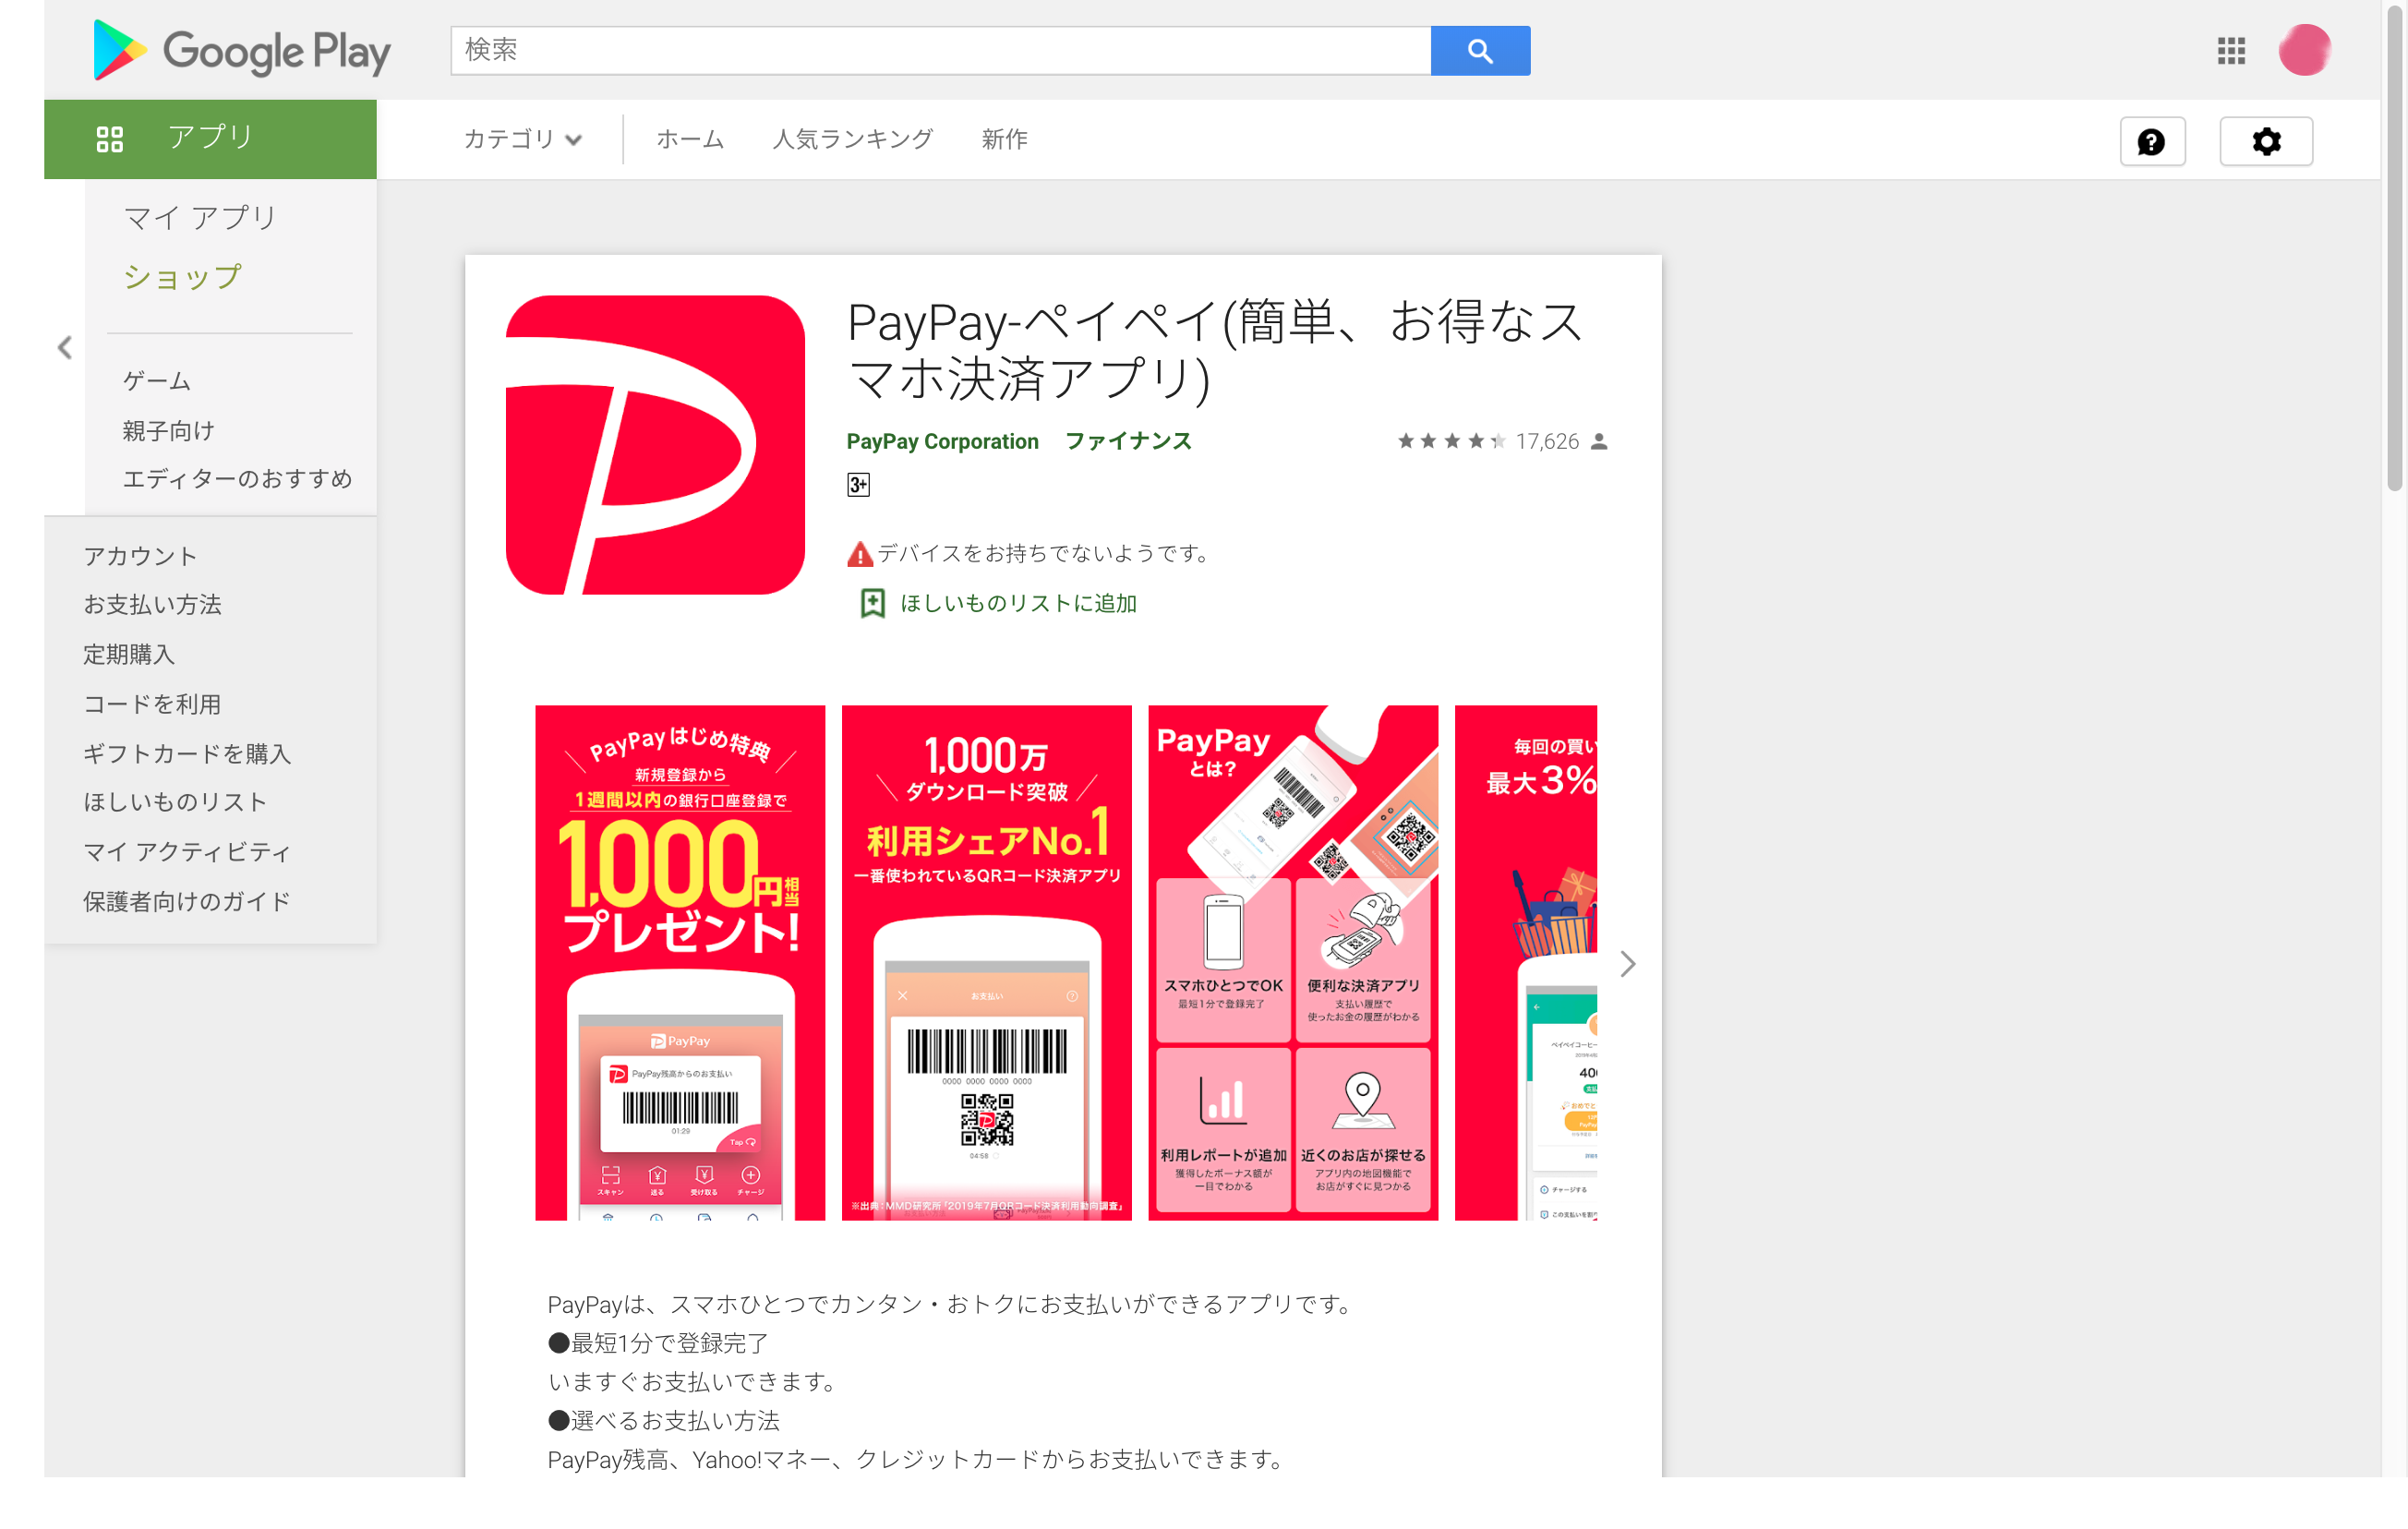 Google Play「PayPay」アプリ